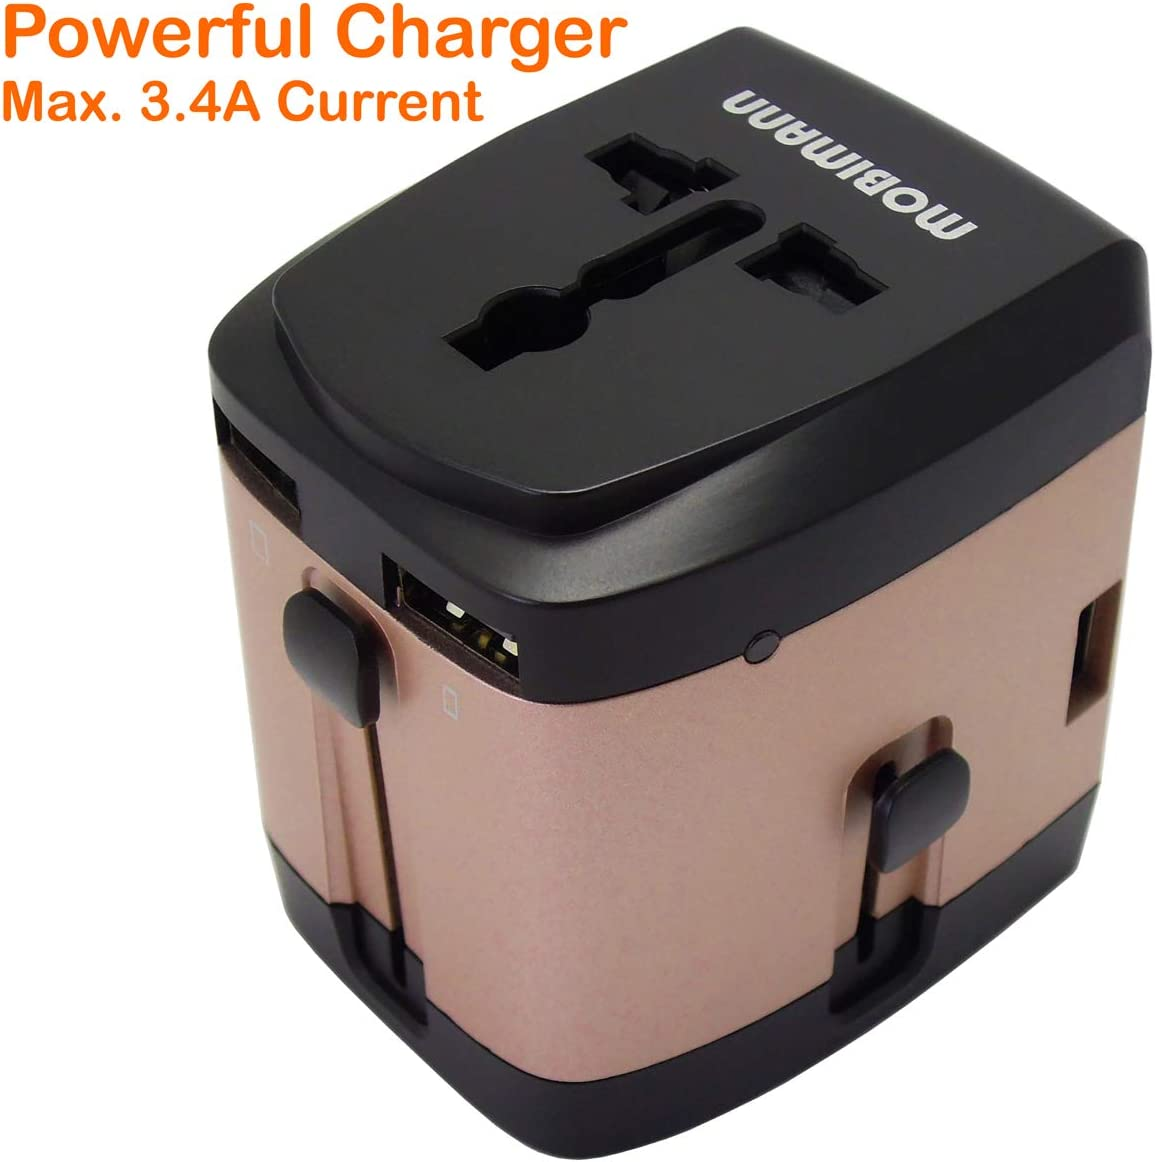 Travel Adapter, Worldwide All in One Universal Travel Adaptor Wall AC Power Plug Adapter Wall Charger with 4 USB Charging Ports for USA EU UK AUS Cell Phone Laptop